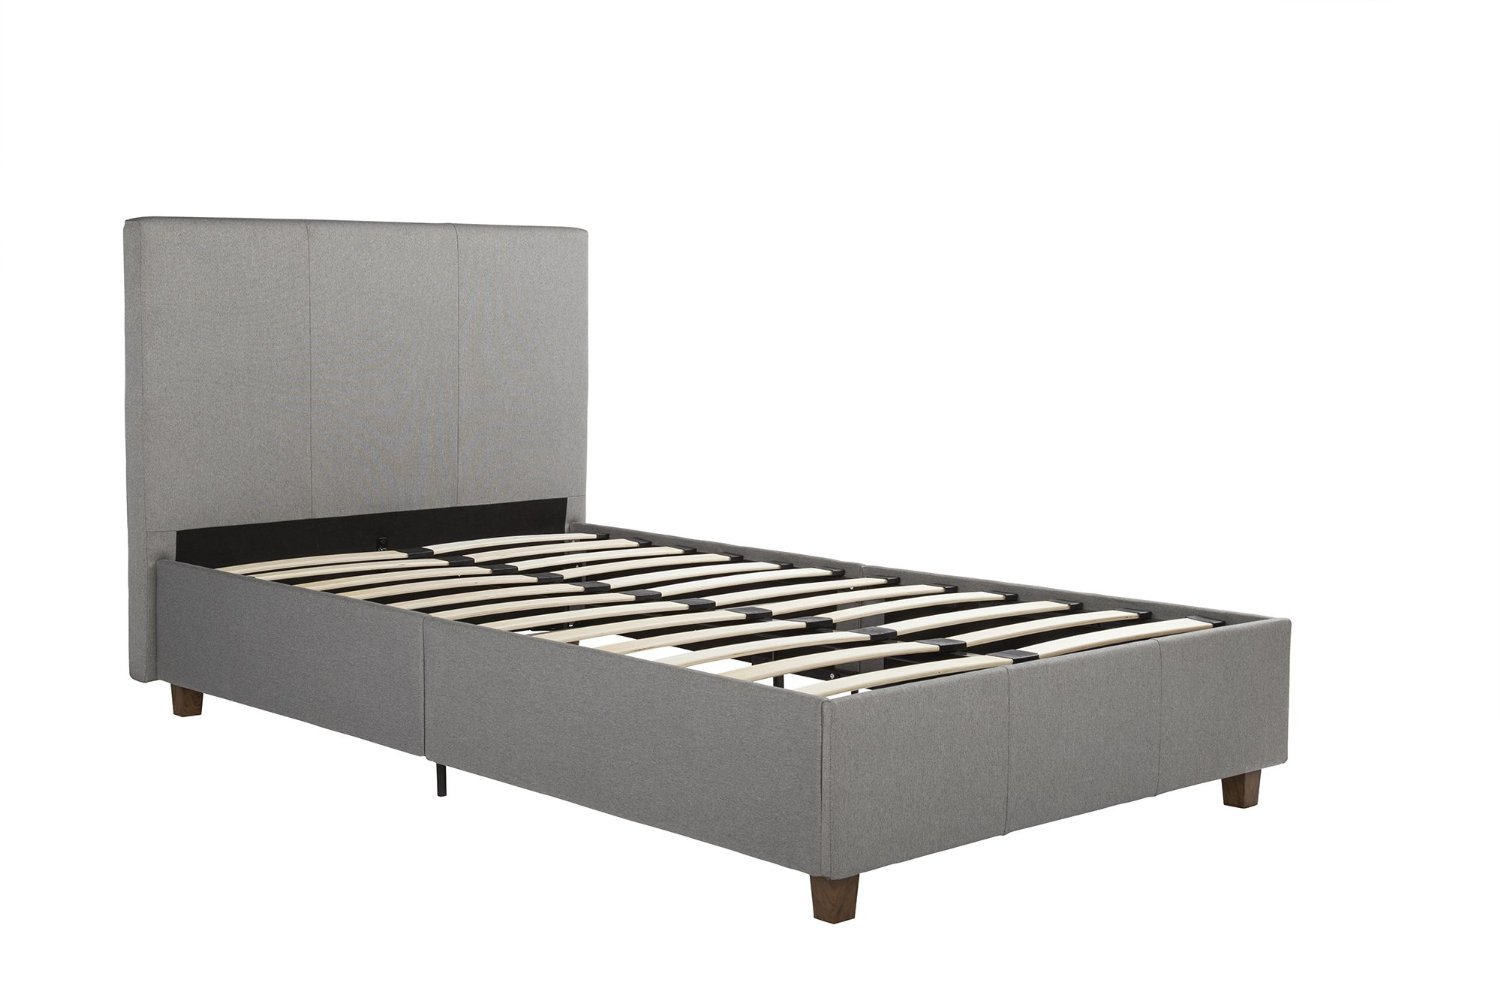 c8de1dc6c07 DHP Cambridge Upholstered Linen Platform Bed with Wooden Slat Support and Under  Bed Storage